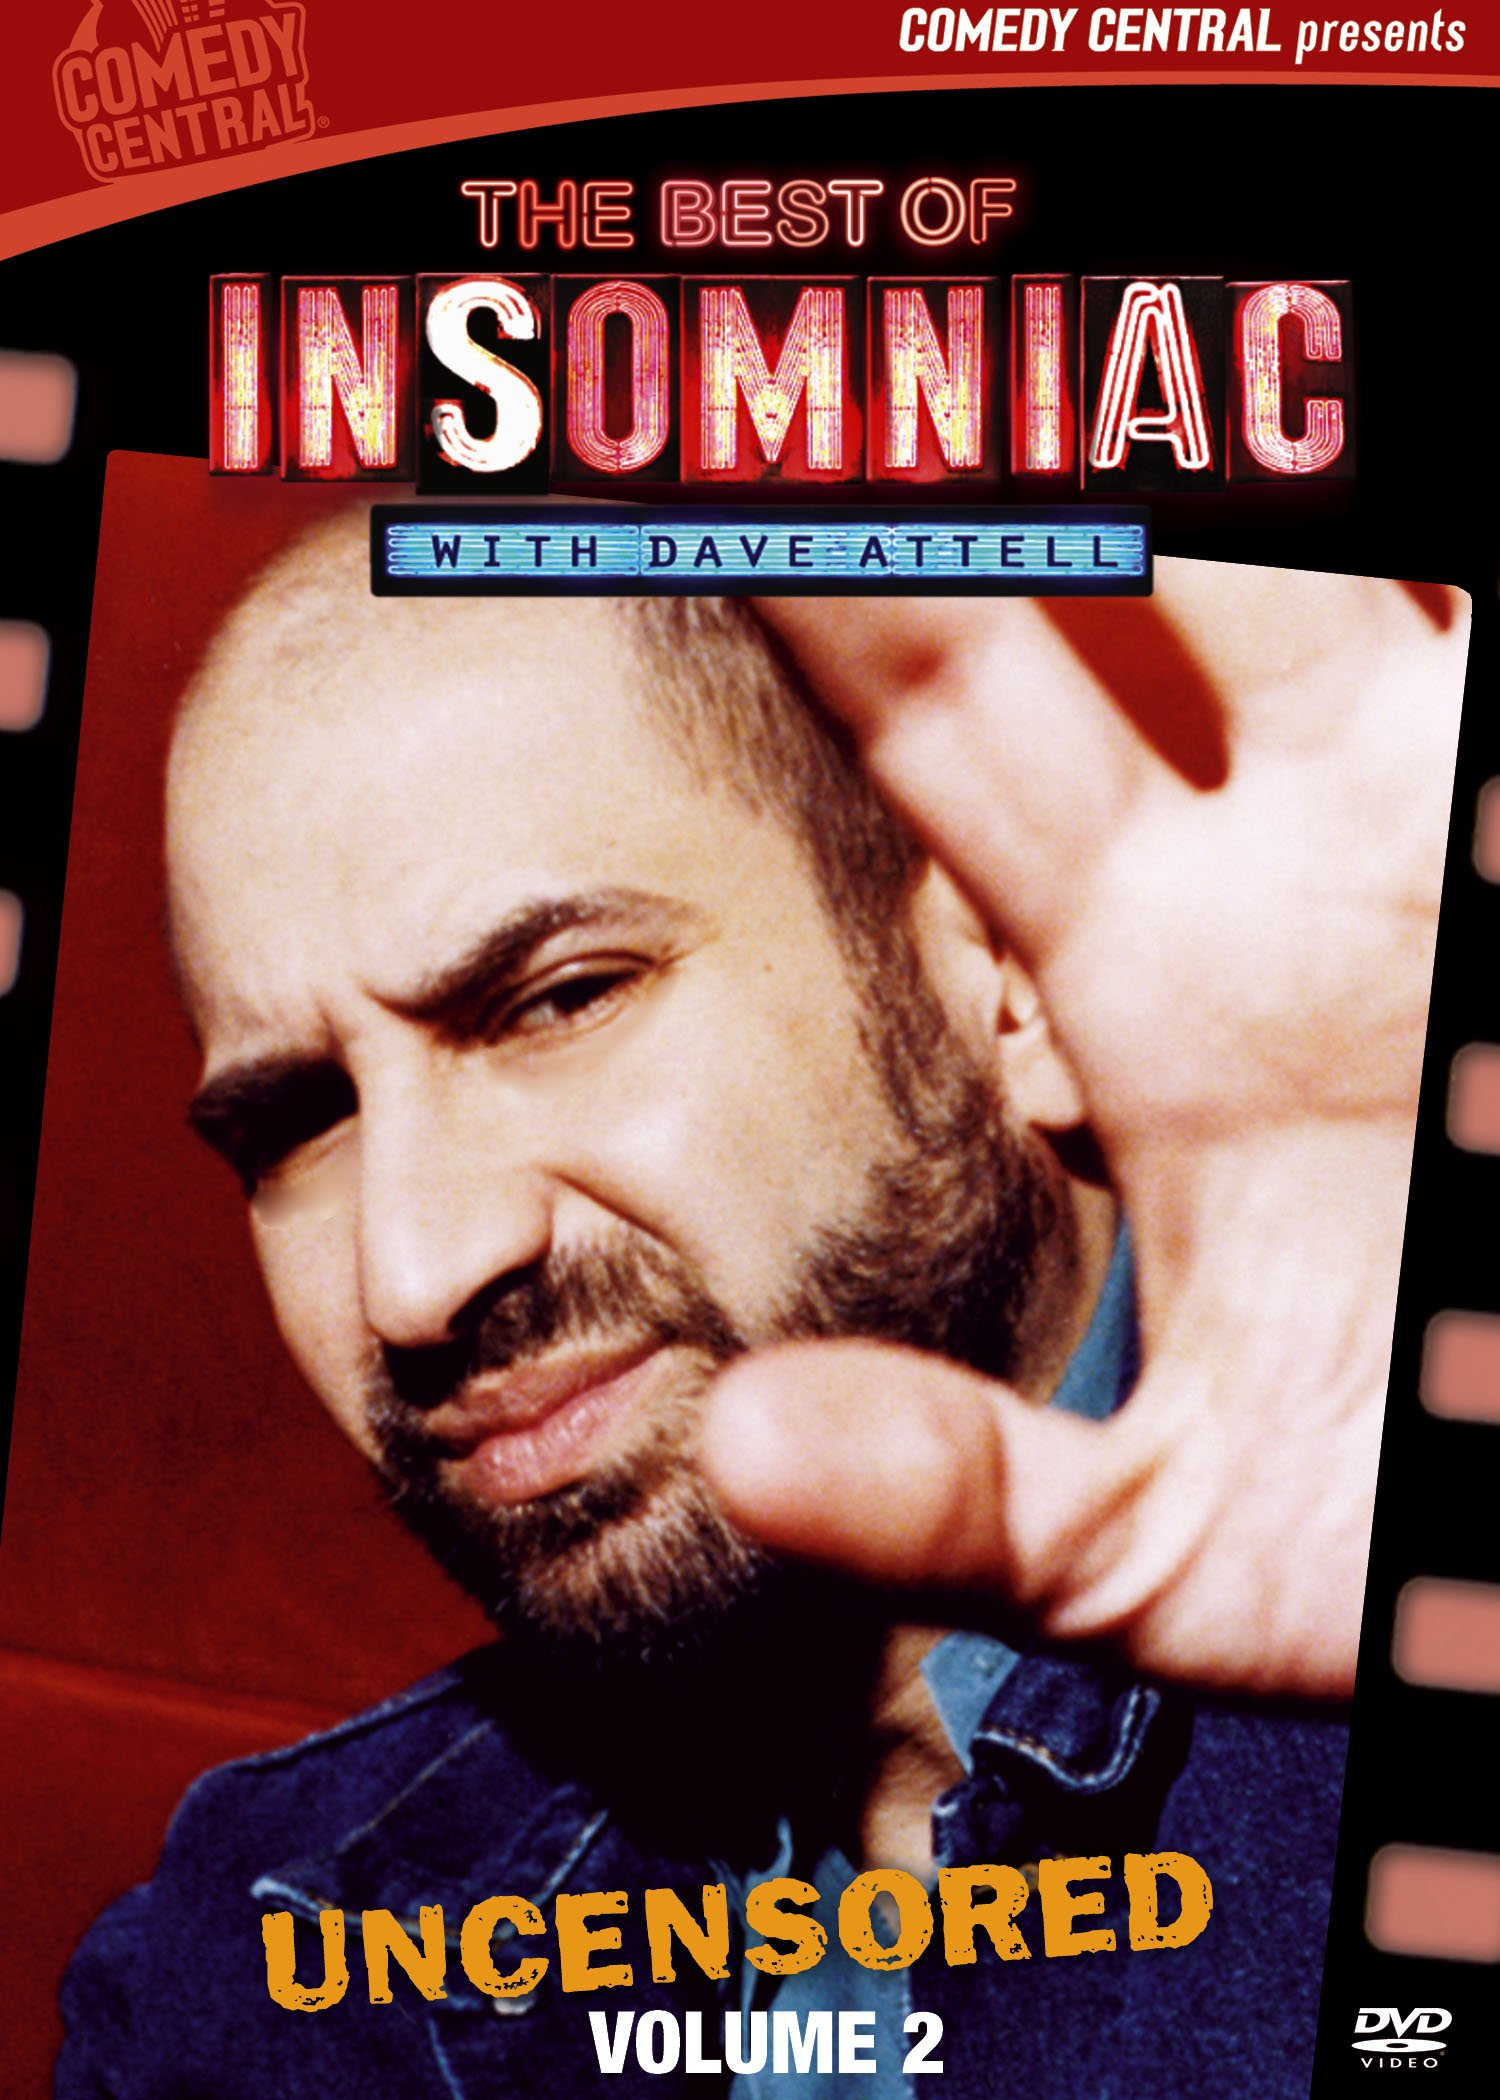 Dave Attell - The Best of Insomniac With Dave Attell: Uncensored: Volume 2 [Explicit Content] (Uncensored, 2PC)